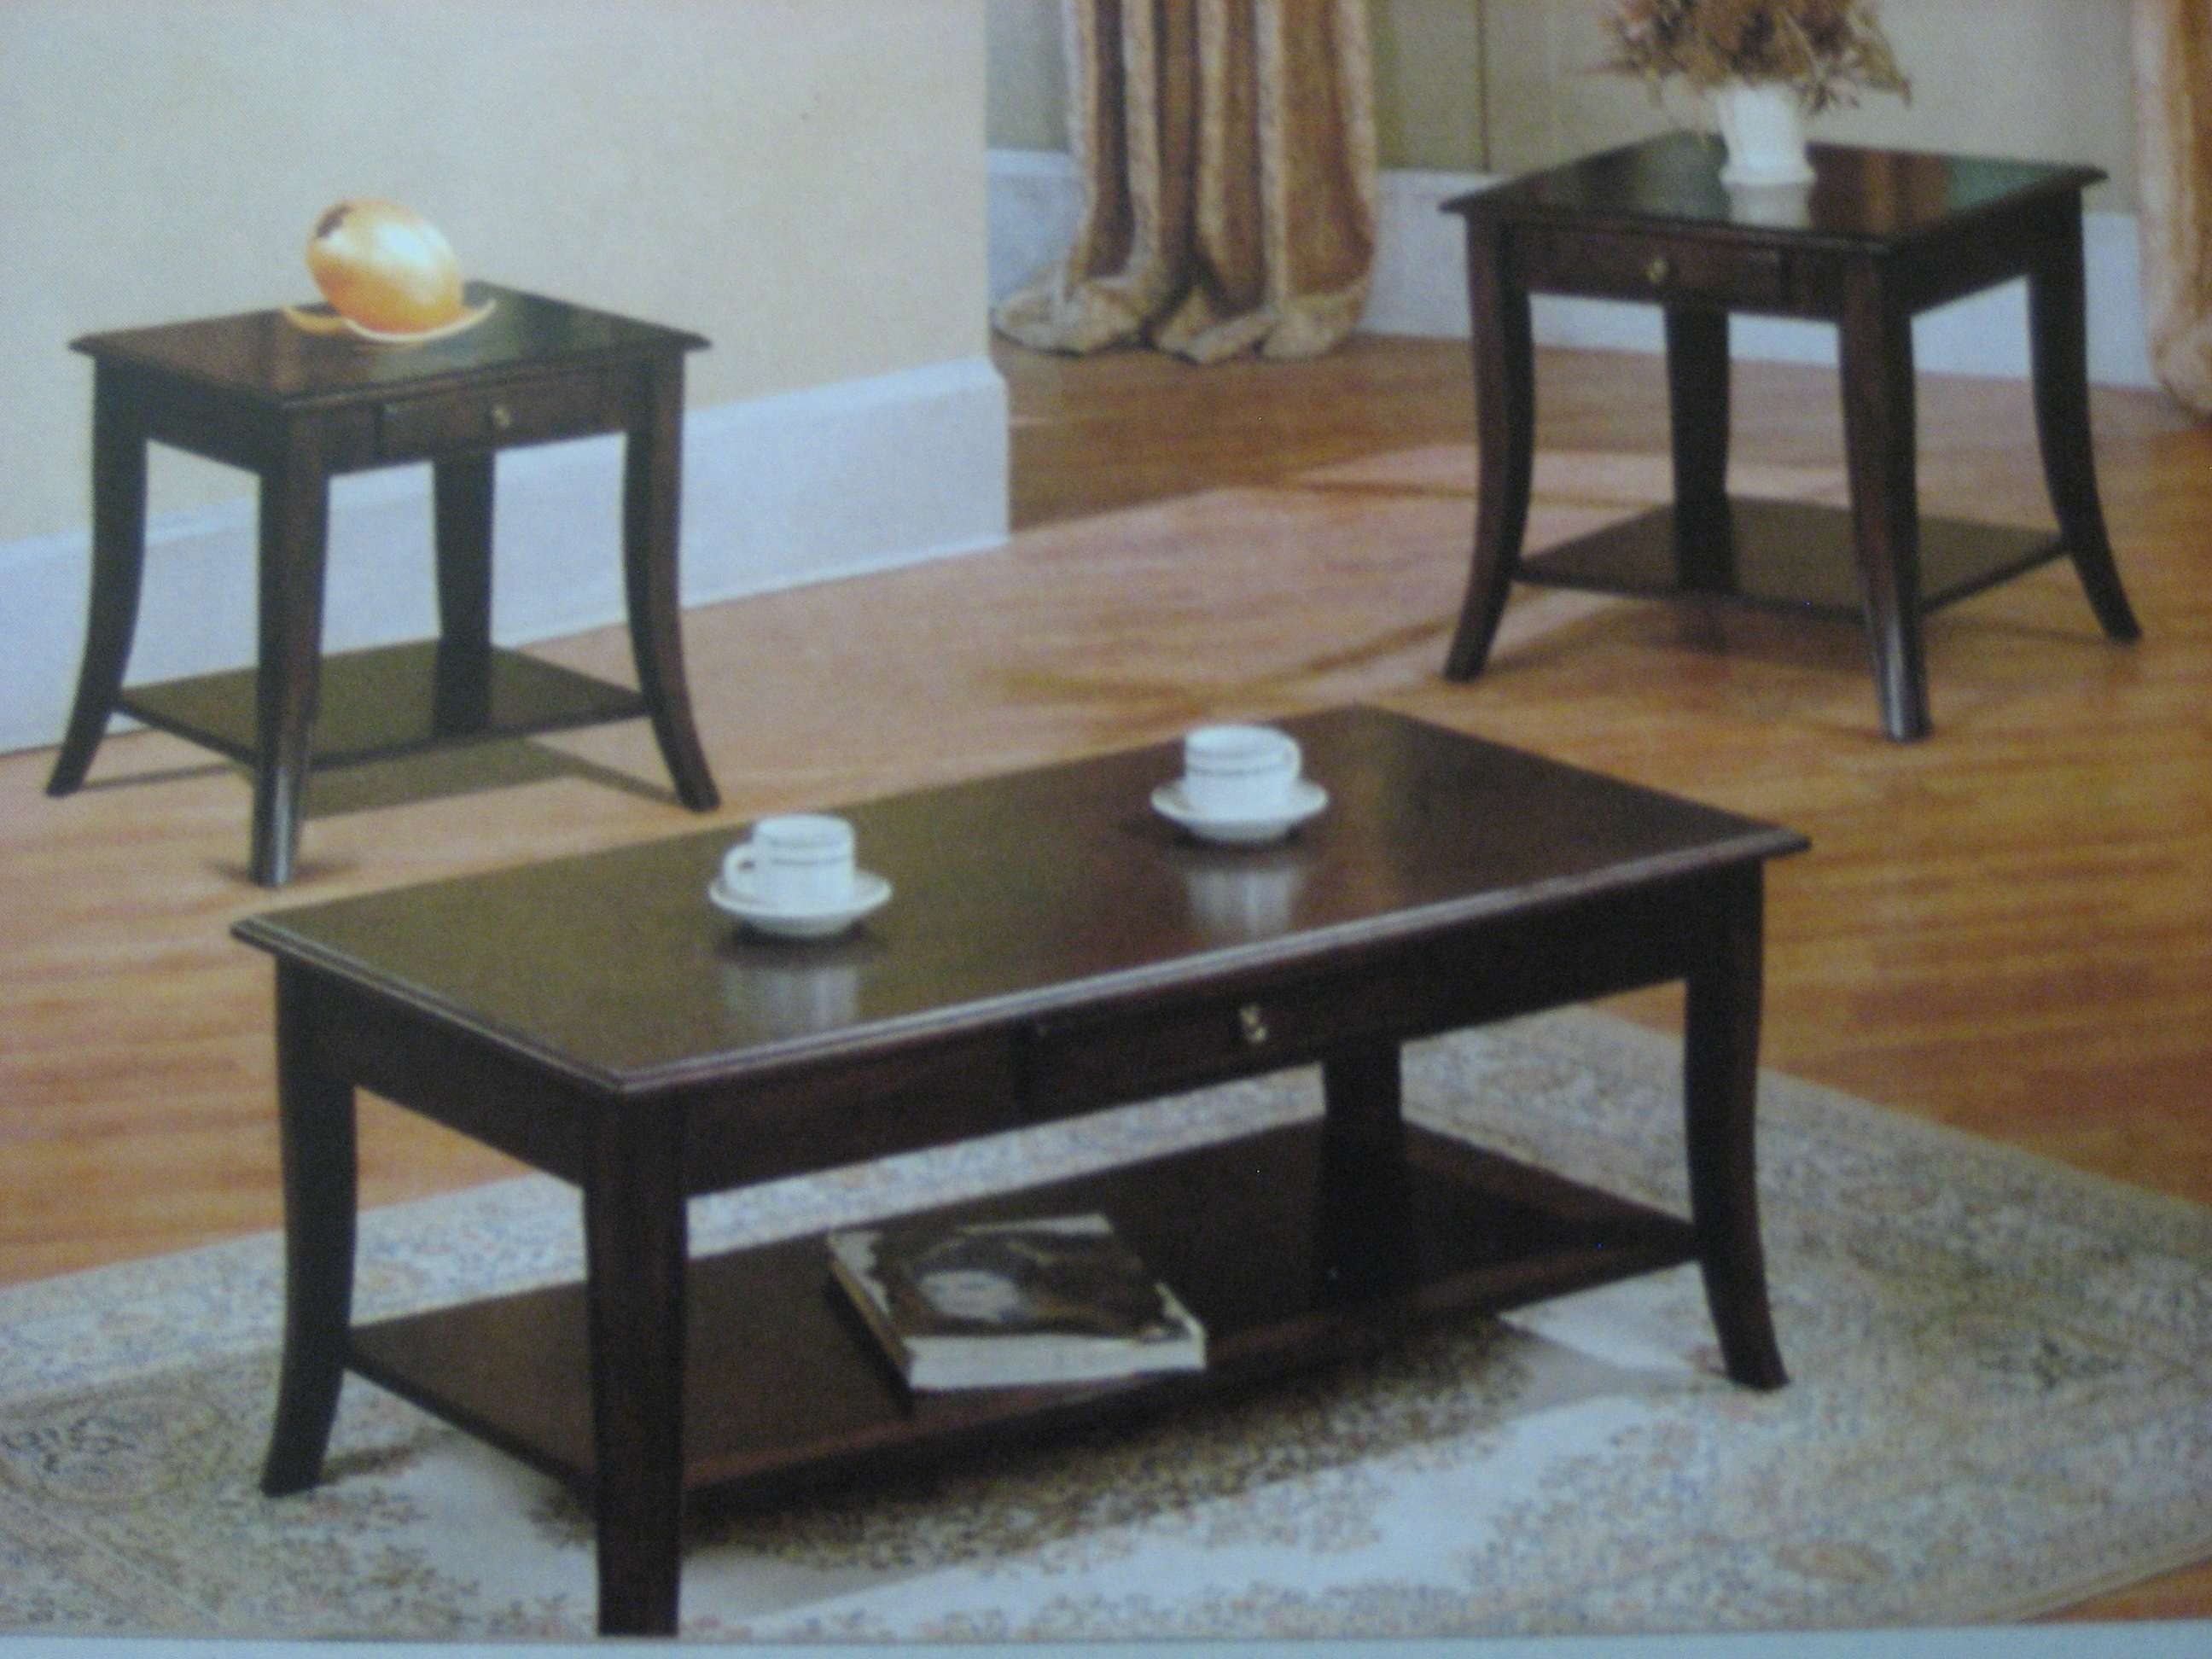 Fashionable Cherry Wood Coffee Table Sets Throughout Coffee Table : Wonderful Glass For Coffee Table End Table Sets (View 12 of 20)